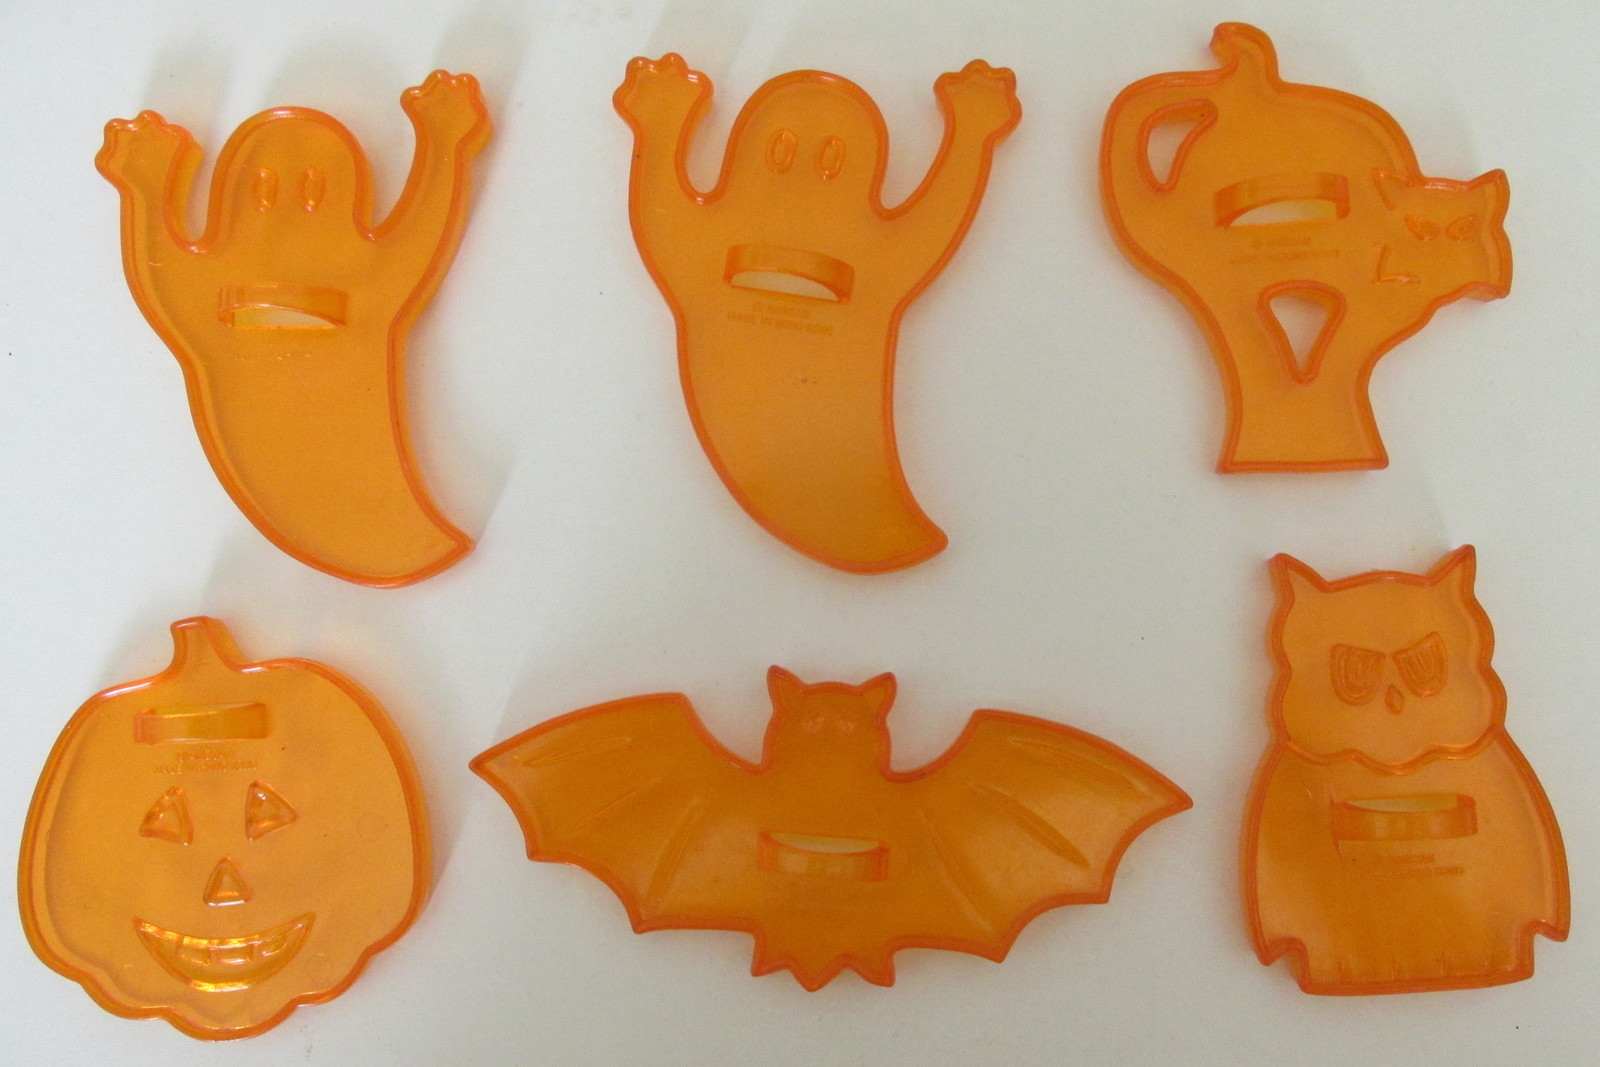 Primary image for Vintage Orange Plastic Halloween Cookie Cutters, Sun Catchers, or for a Mobile